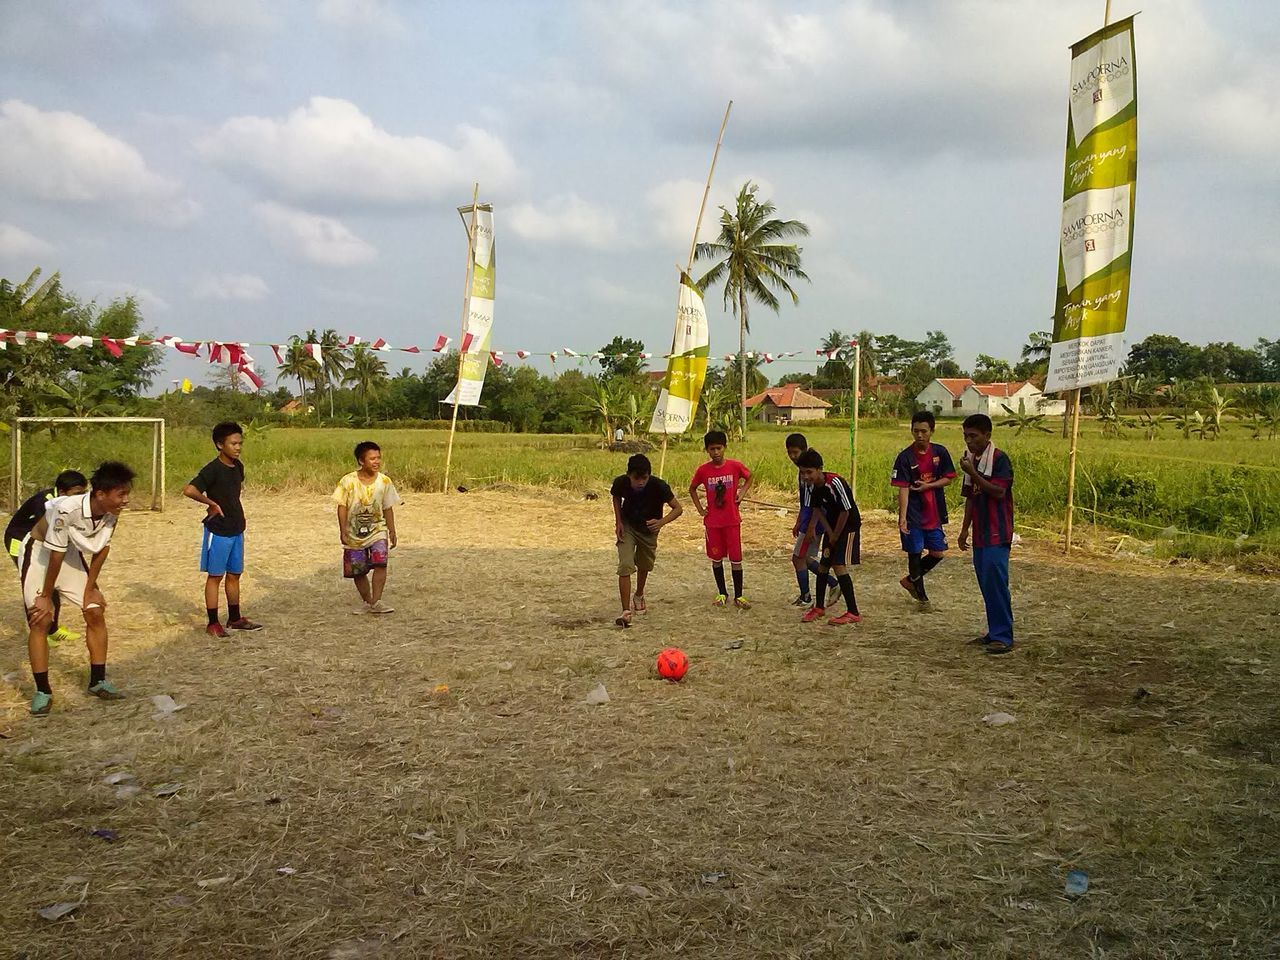 real people, large group of people, leisure activity, playing, sky, sport, enjoyment, men, day, tree, fun, cloud - sky, outdoors, lifestyles, standing, soccer, grass, nature, people, adult